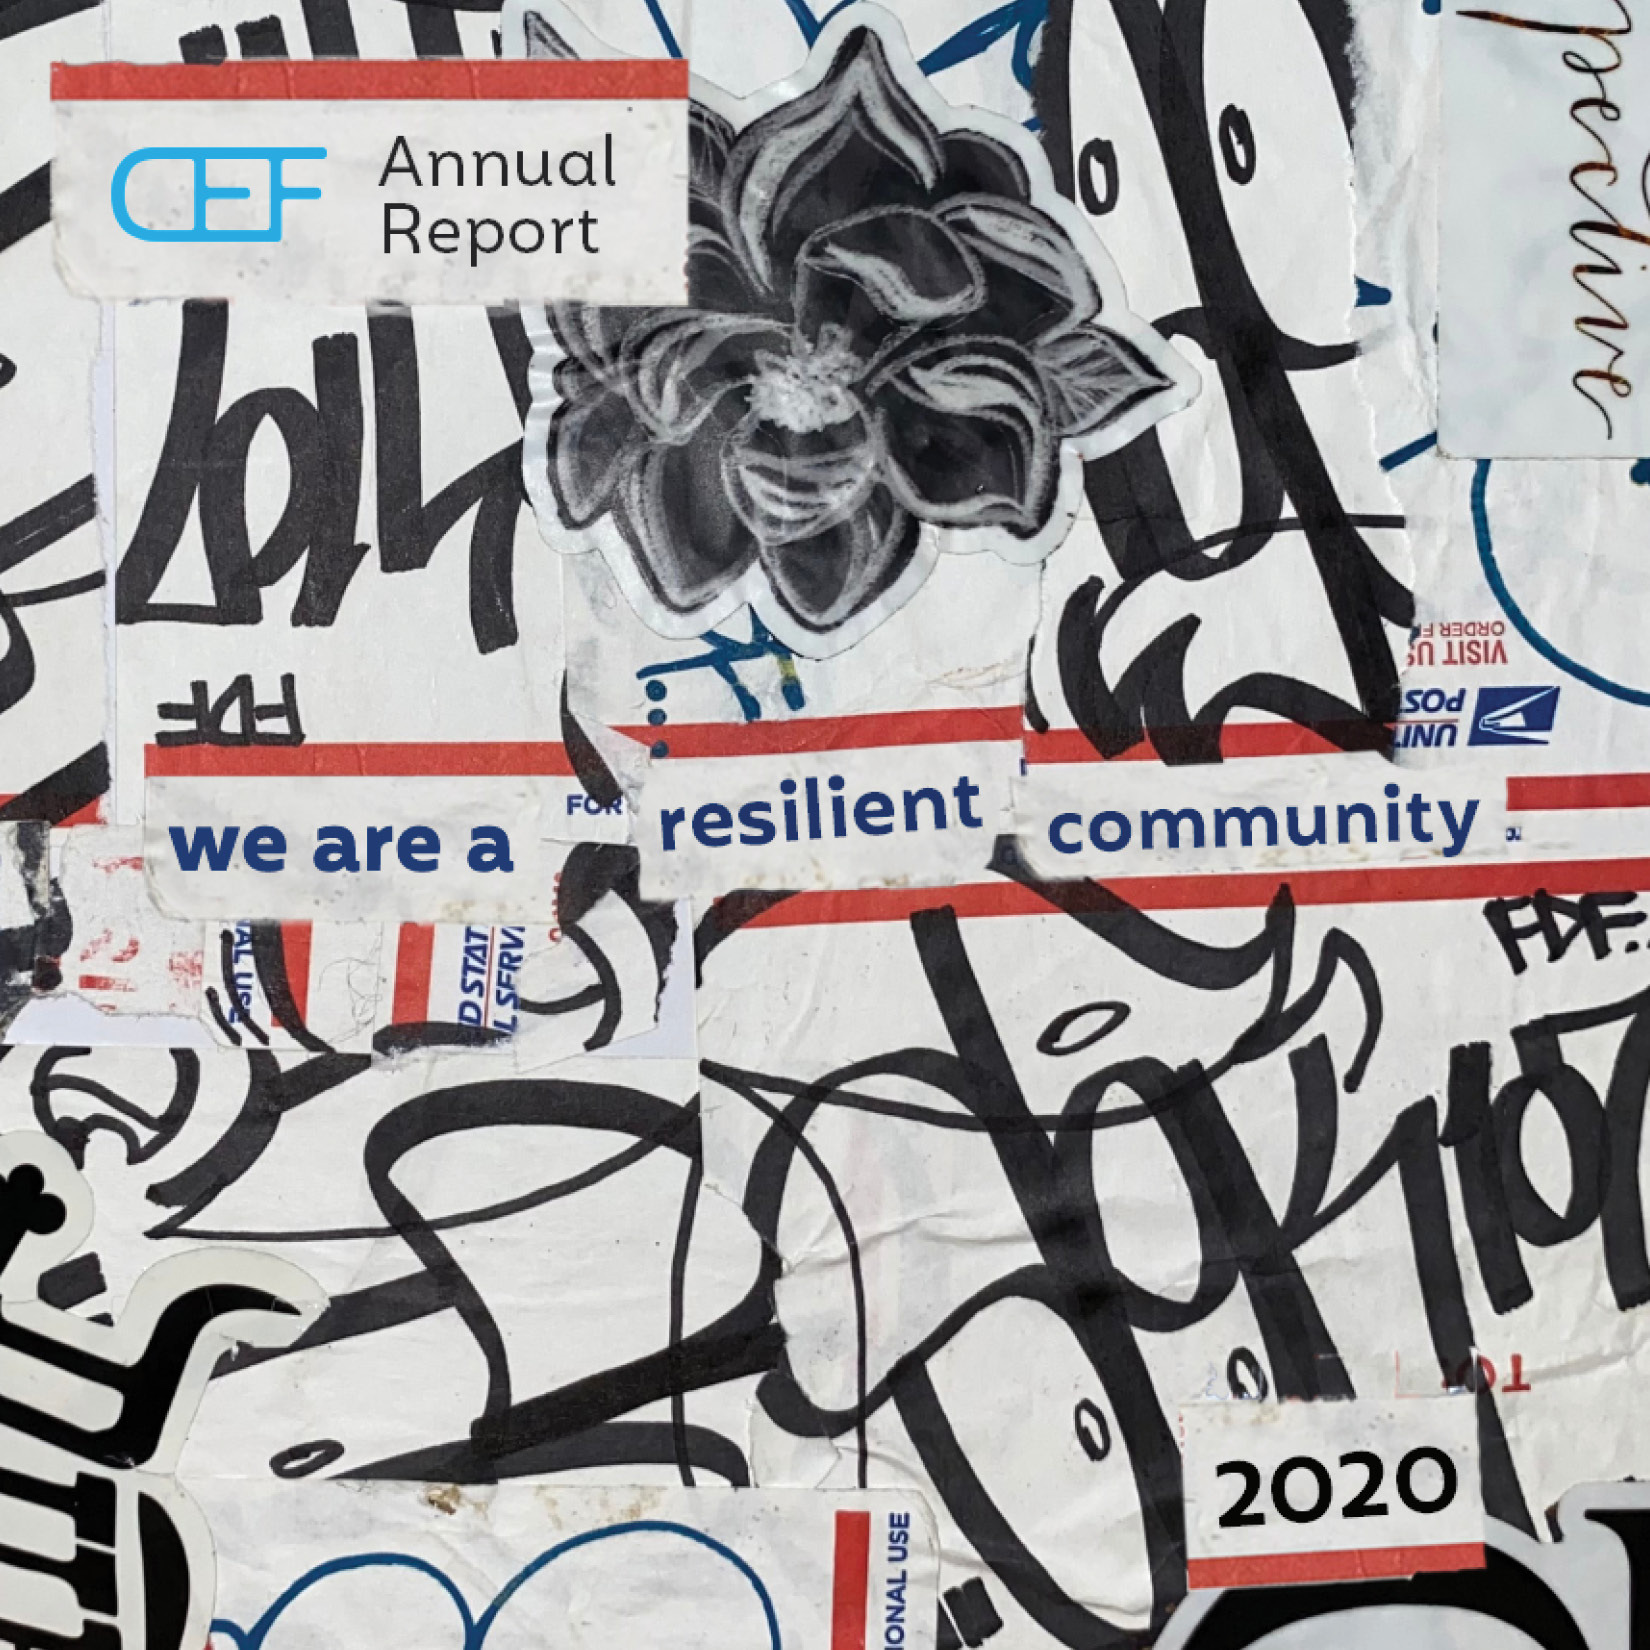 CEF Annual Report We are a resilient community 2020